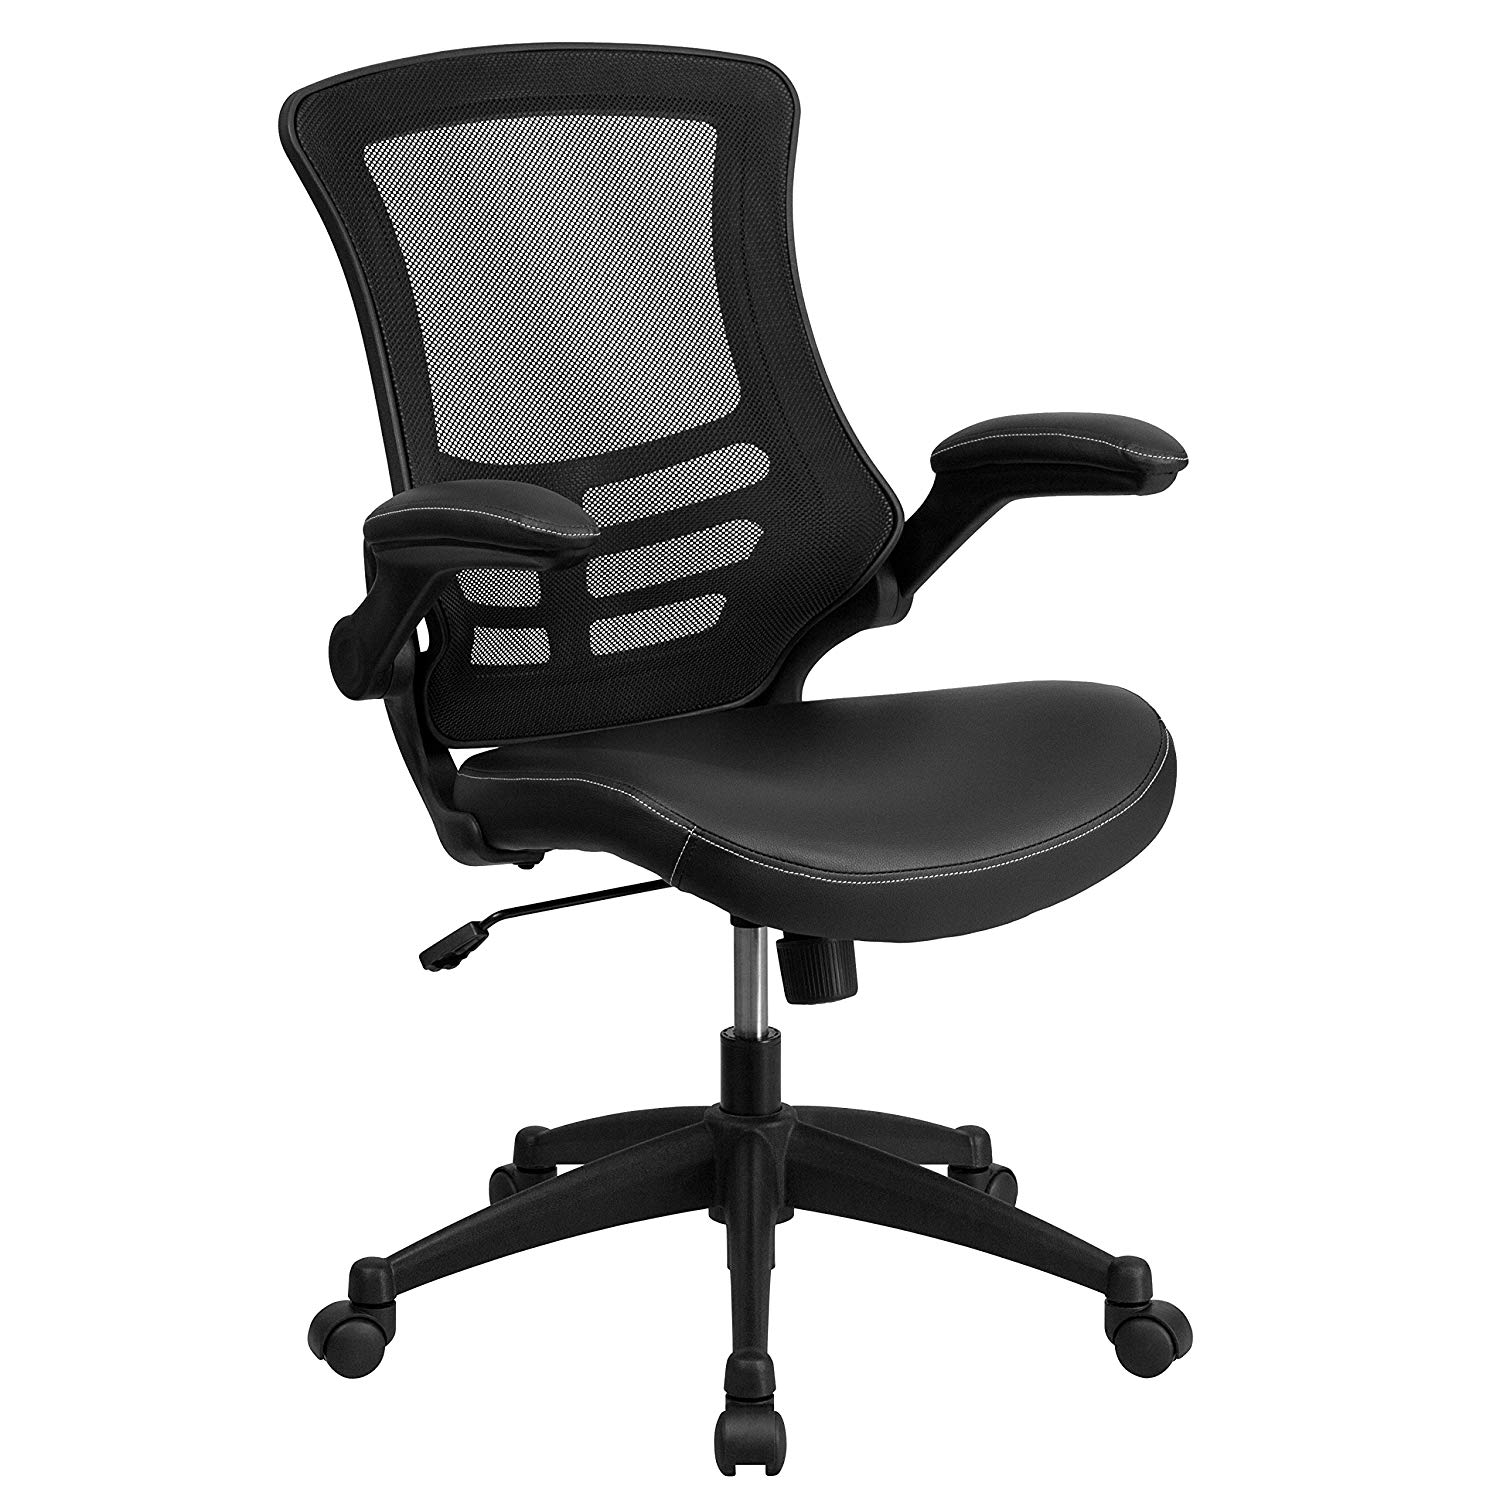 Best Budget Office Chair 2020